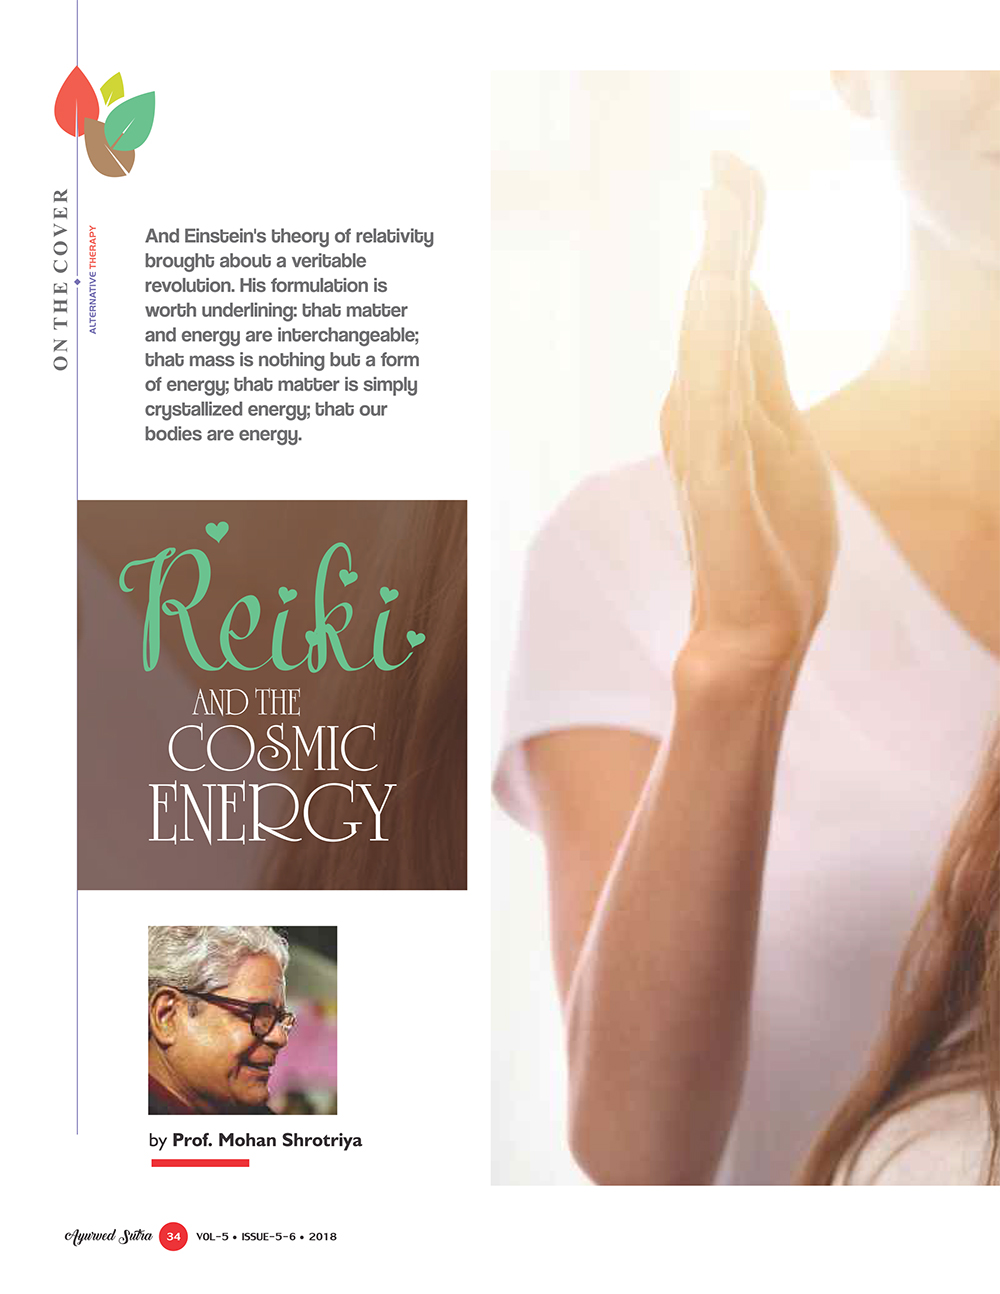 Ayurvedsutra Vol 05 issue 05 06 36 - Reiki and  the Cosmic Energy